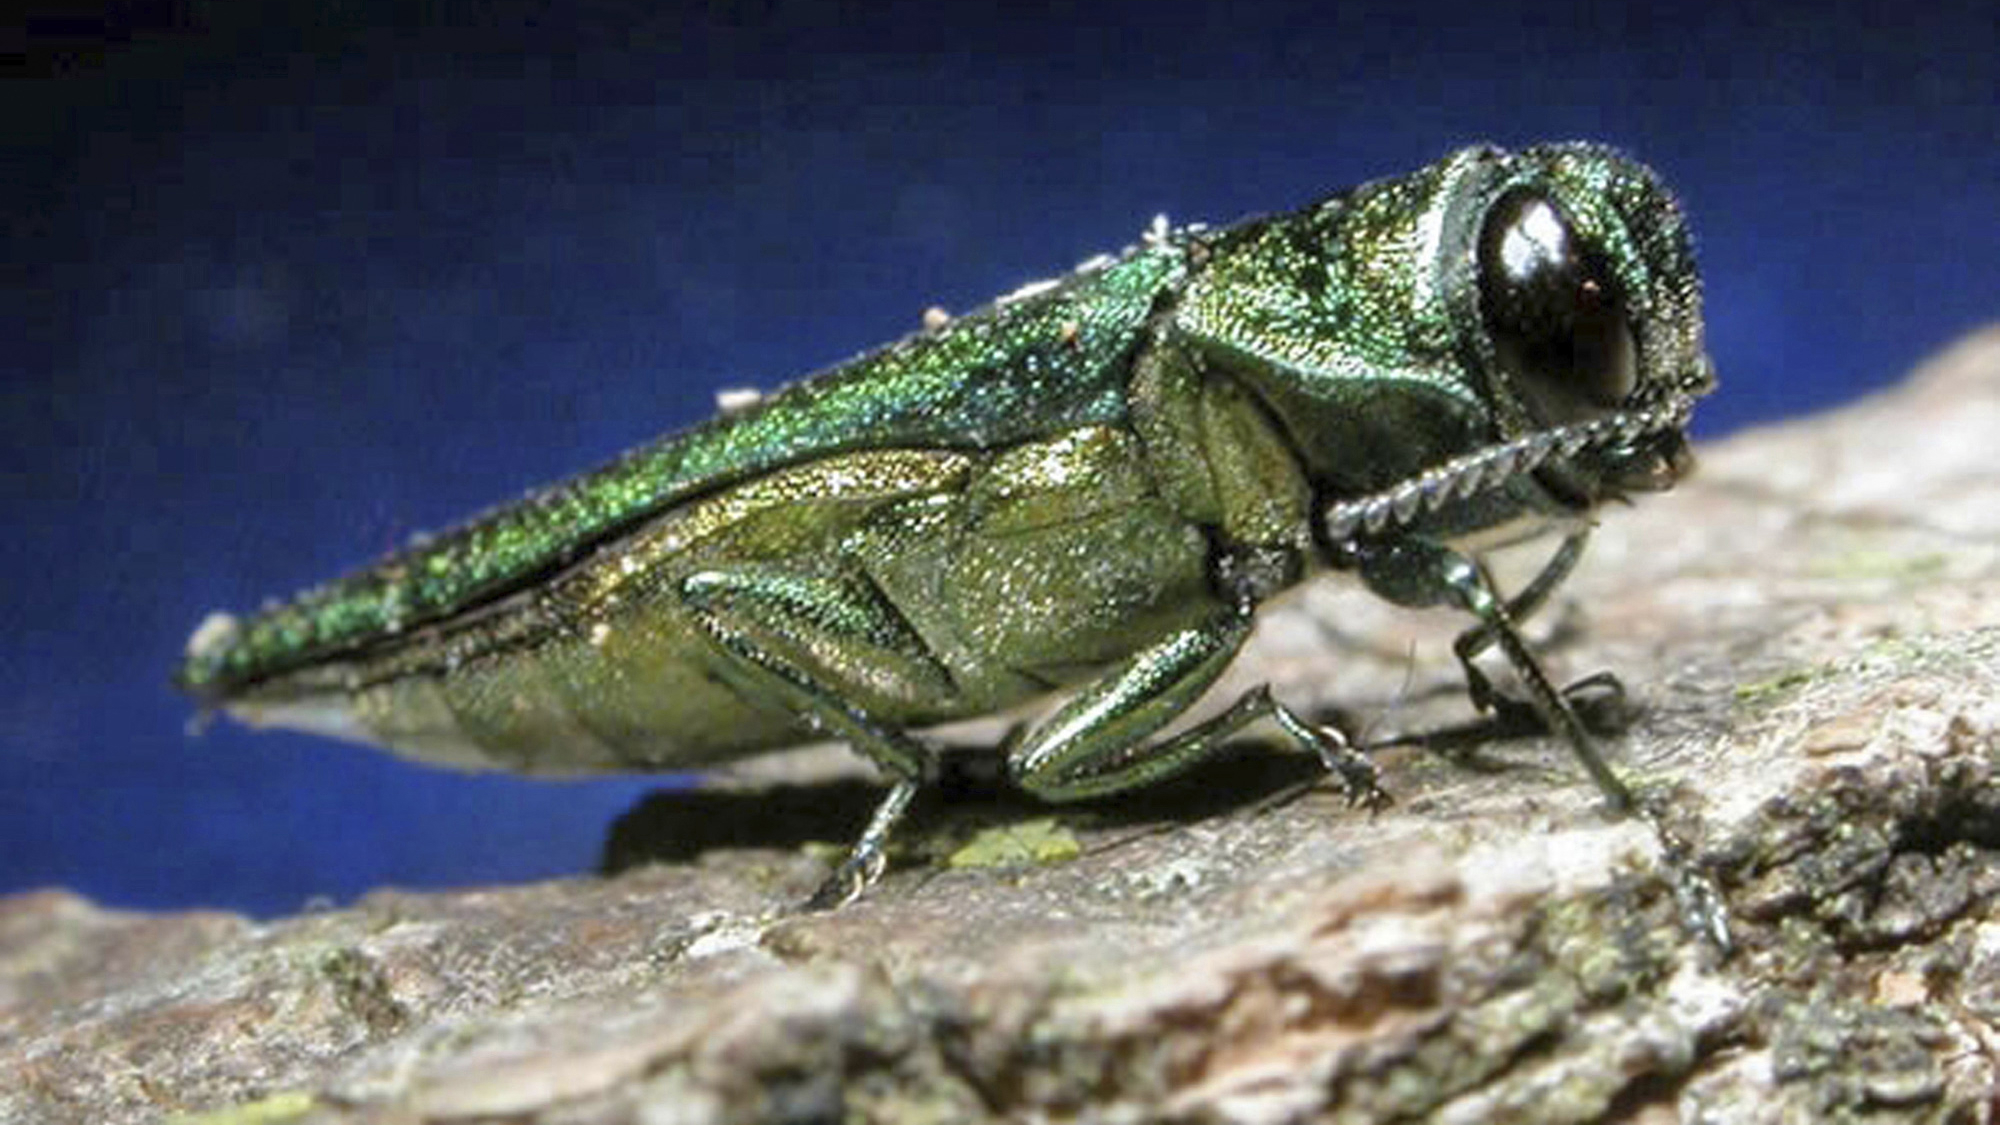 This undated file photo provided by the Minnesota Department of Natural Resources shows an adult emerald ash borer. The insect that could threaten one of South Dakota's most populous tree species moved even closer to the state in the past year. The emerald ash borer last year was found in Union County in southwestern Iowa, as well as in Boulder, Colo. South Dakota State University forestry expert John Ball said he thinks the Asian beetle will be found in South Dakota within five years. (AP Photo/Minnesota Department of Natural Resources